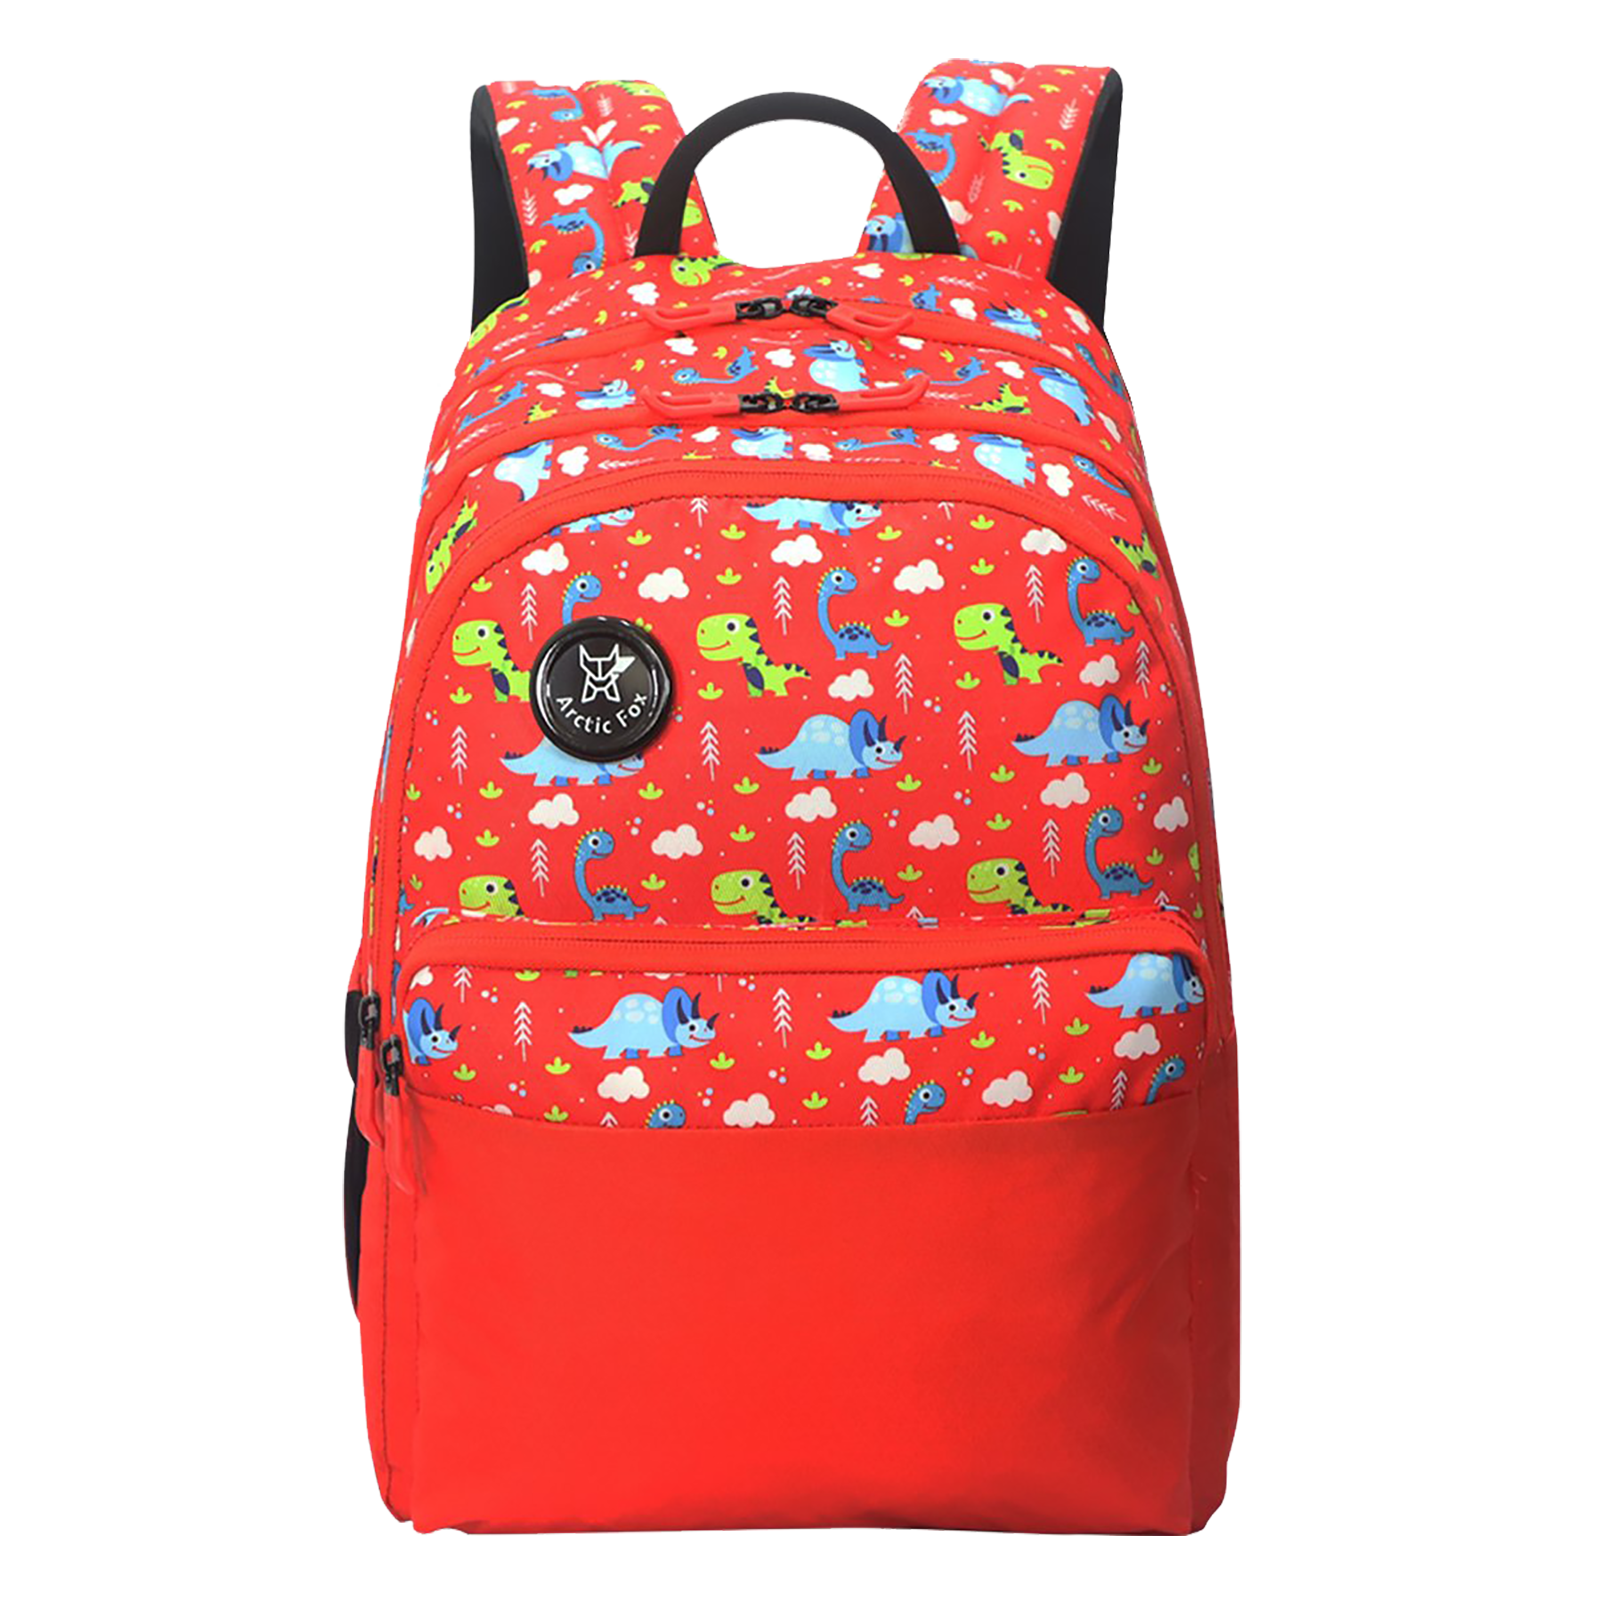 Arctic Fox Dino 23 Litres PU Coated Polyester Backpack (3 Spacious Compartments, FJUBPKFIRWZ069023, Fiery Red)_1